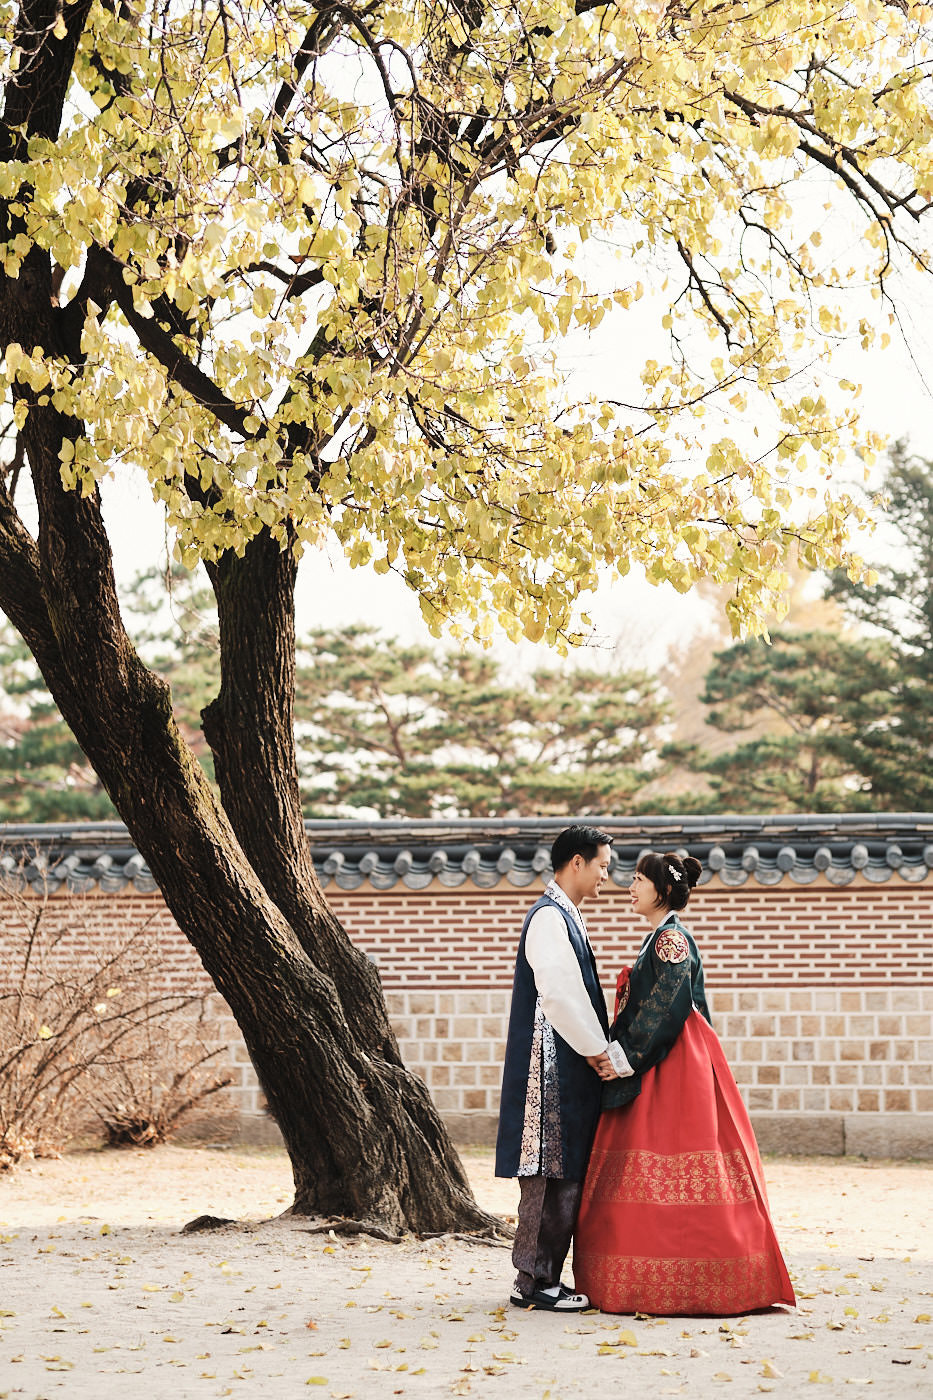 Autumn Leaves and Hanbok